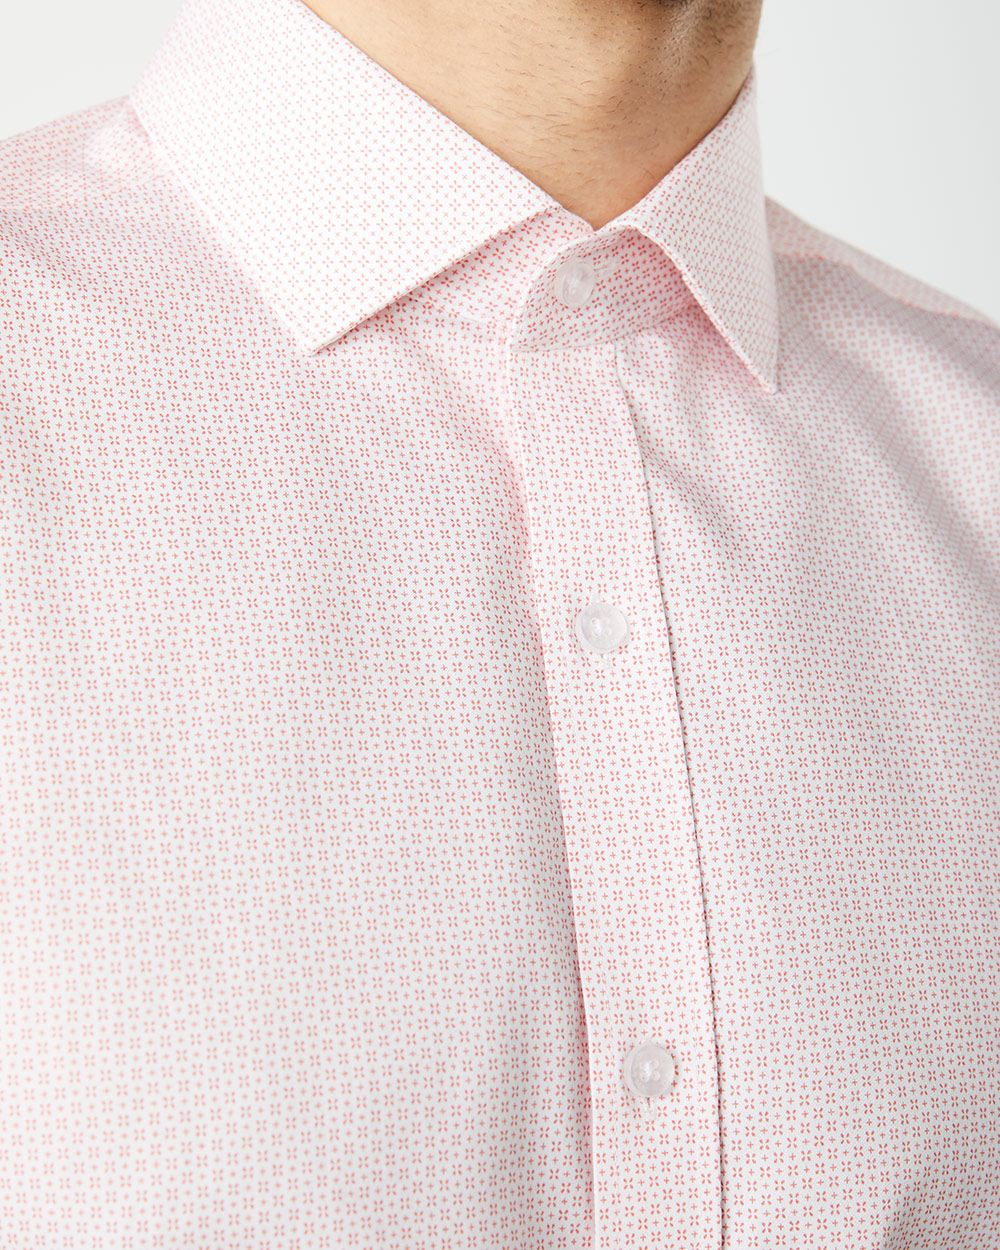 Athletic Fit cross pattern Dress Shirt